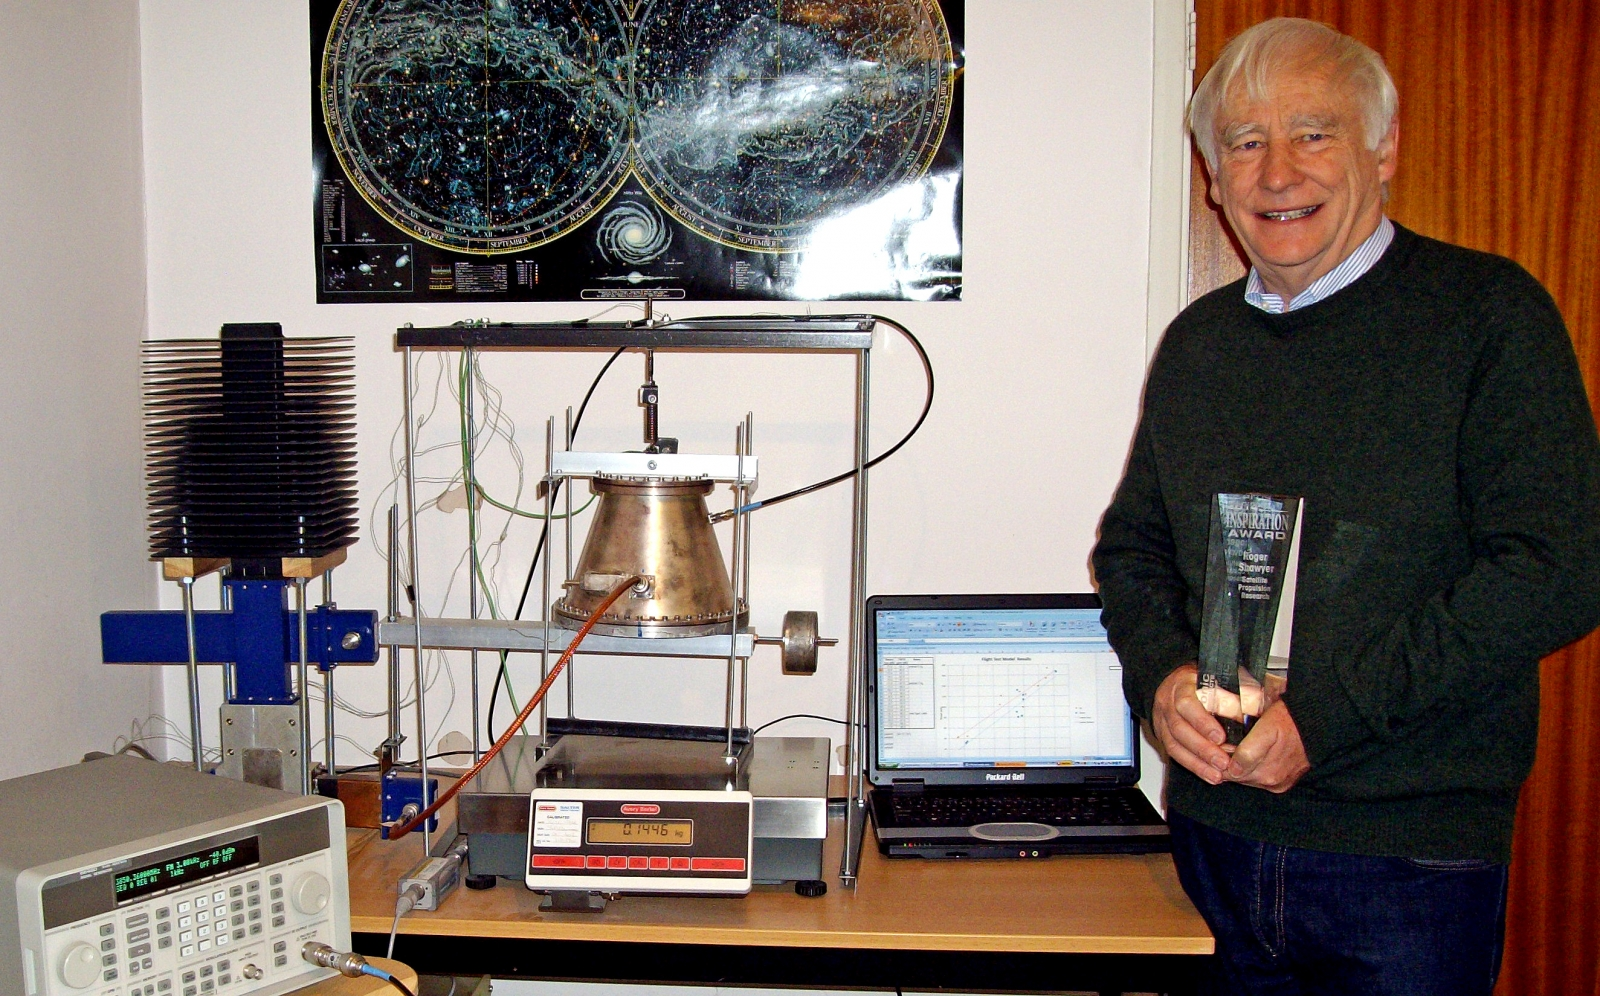 Roger Shawyer, inventor of the EmDrive